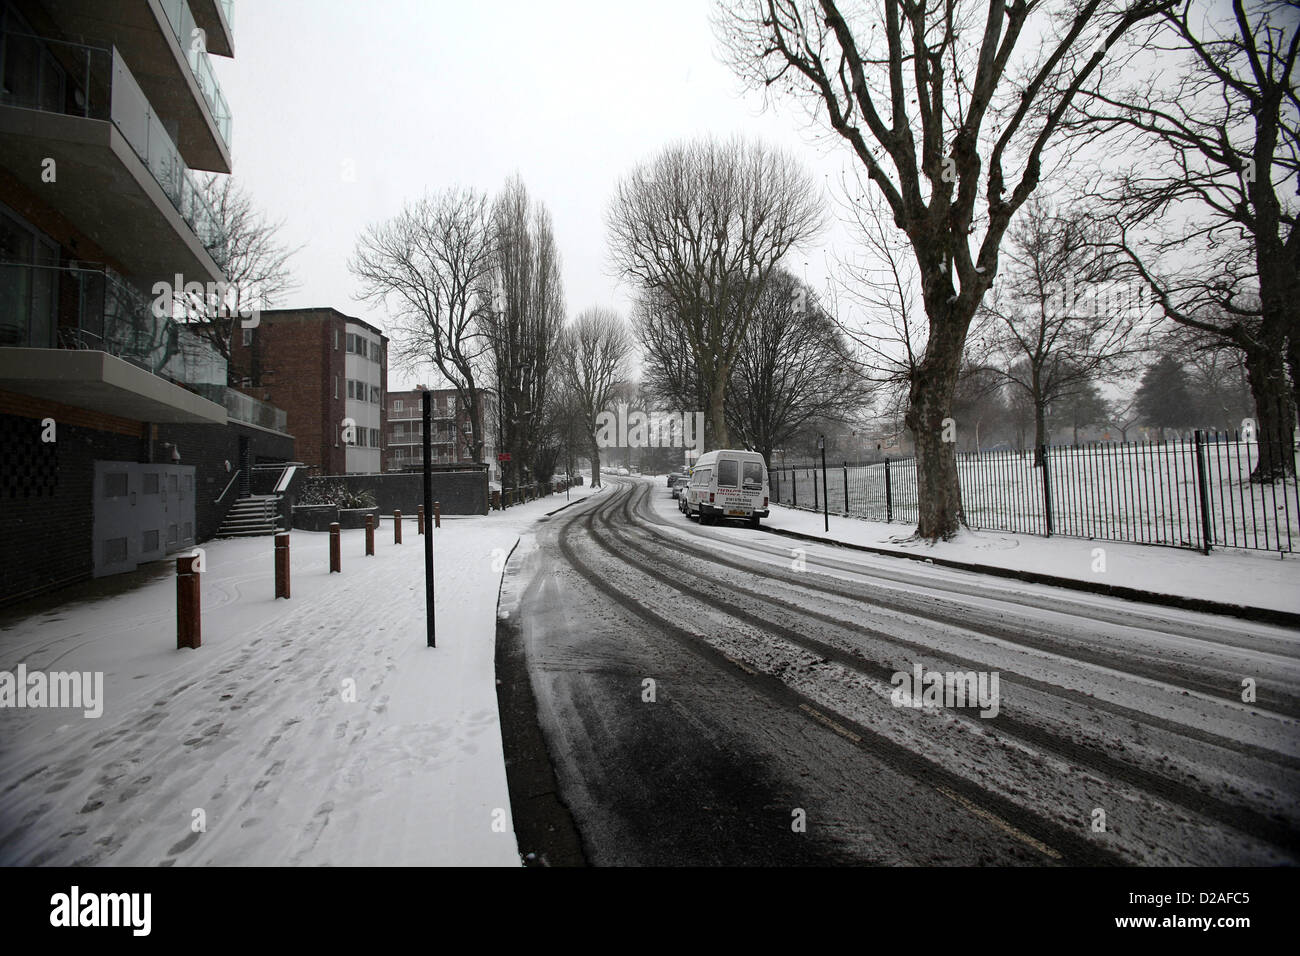 London, UK. 18th January 2013.  Snow settling in Acton, London. - Stock Image